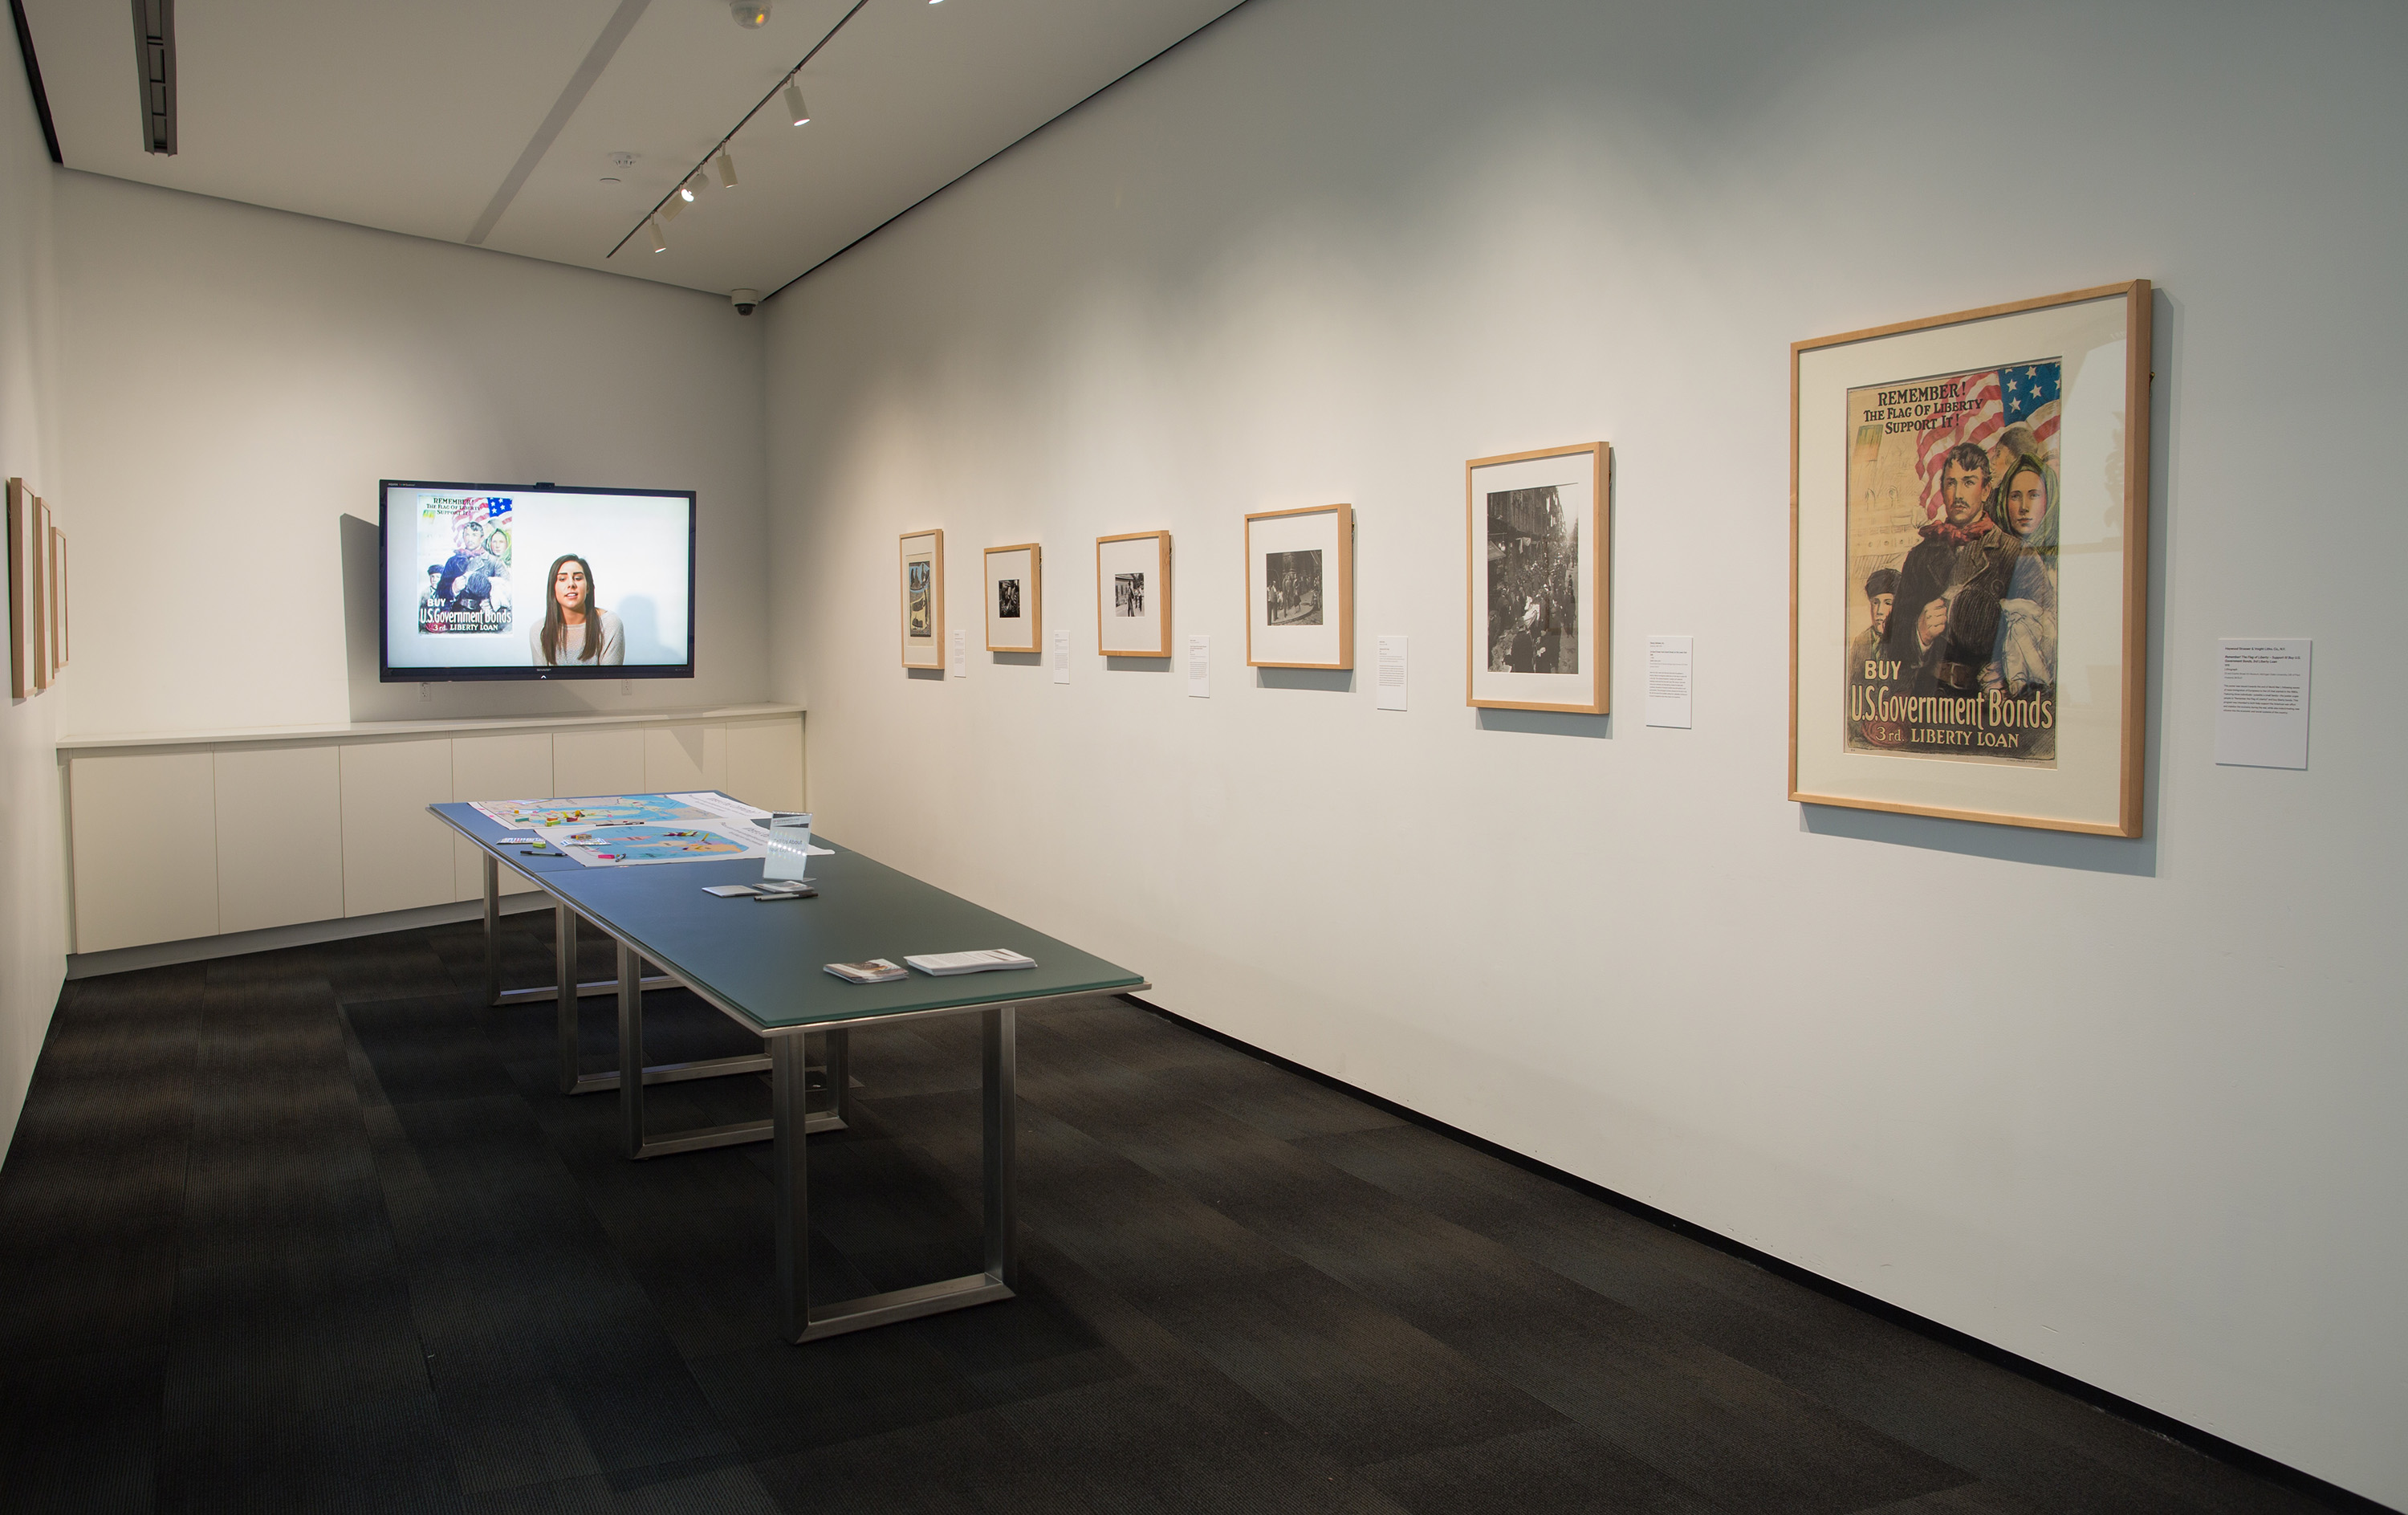 <i>(Dis)Connections: Glimpses of Community</i>, installation view at the Eli and Edythe Broad Art Museum at Michigan State University, 2016. Photo: Eat Pomegranate Photography